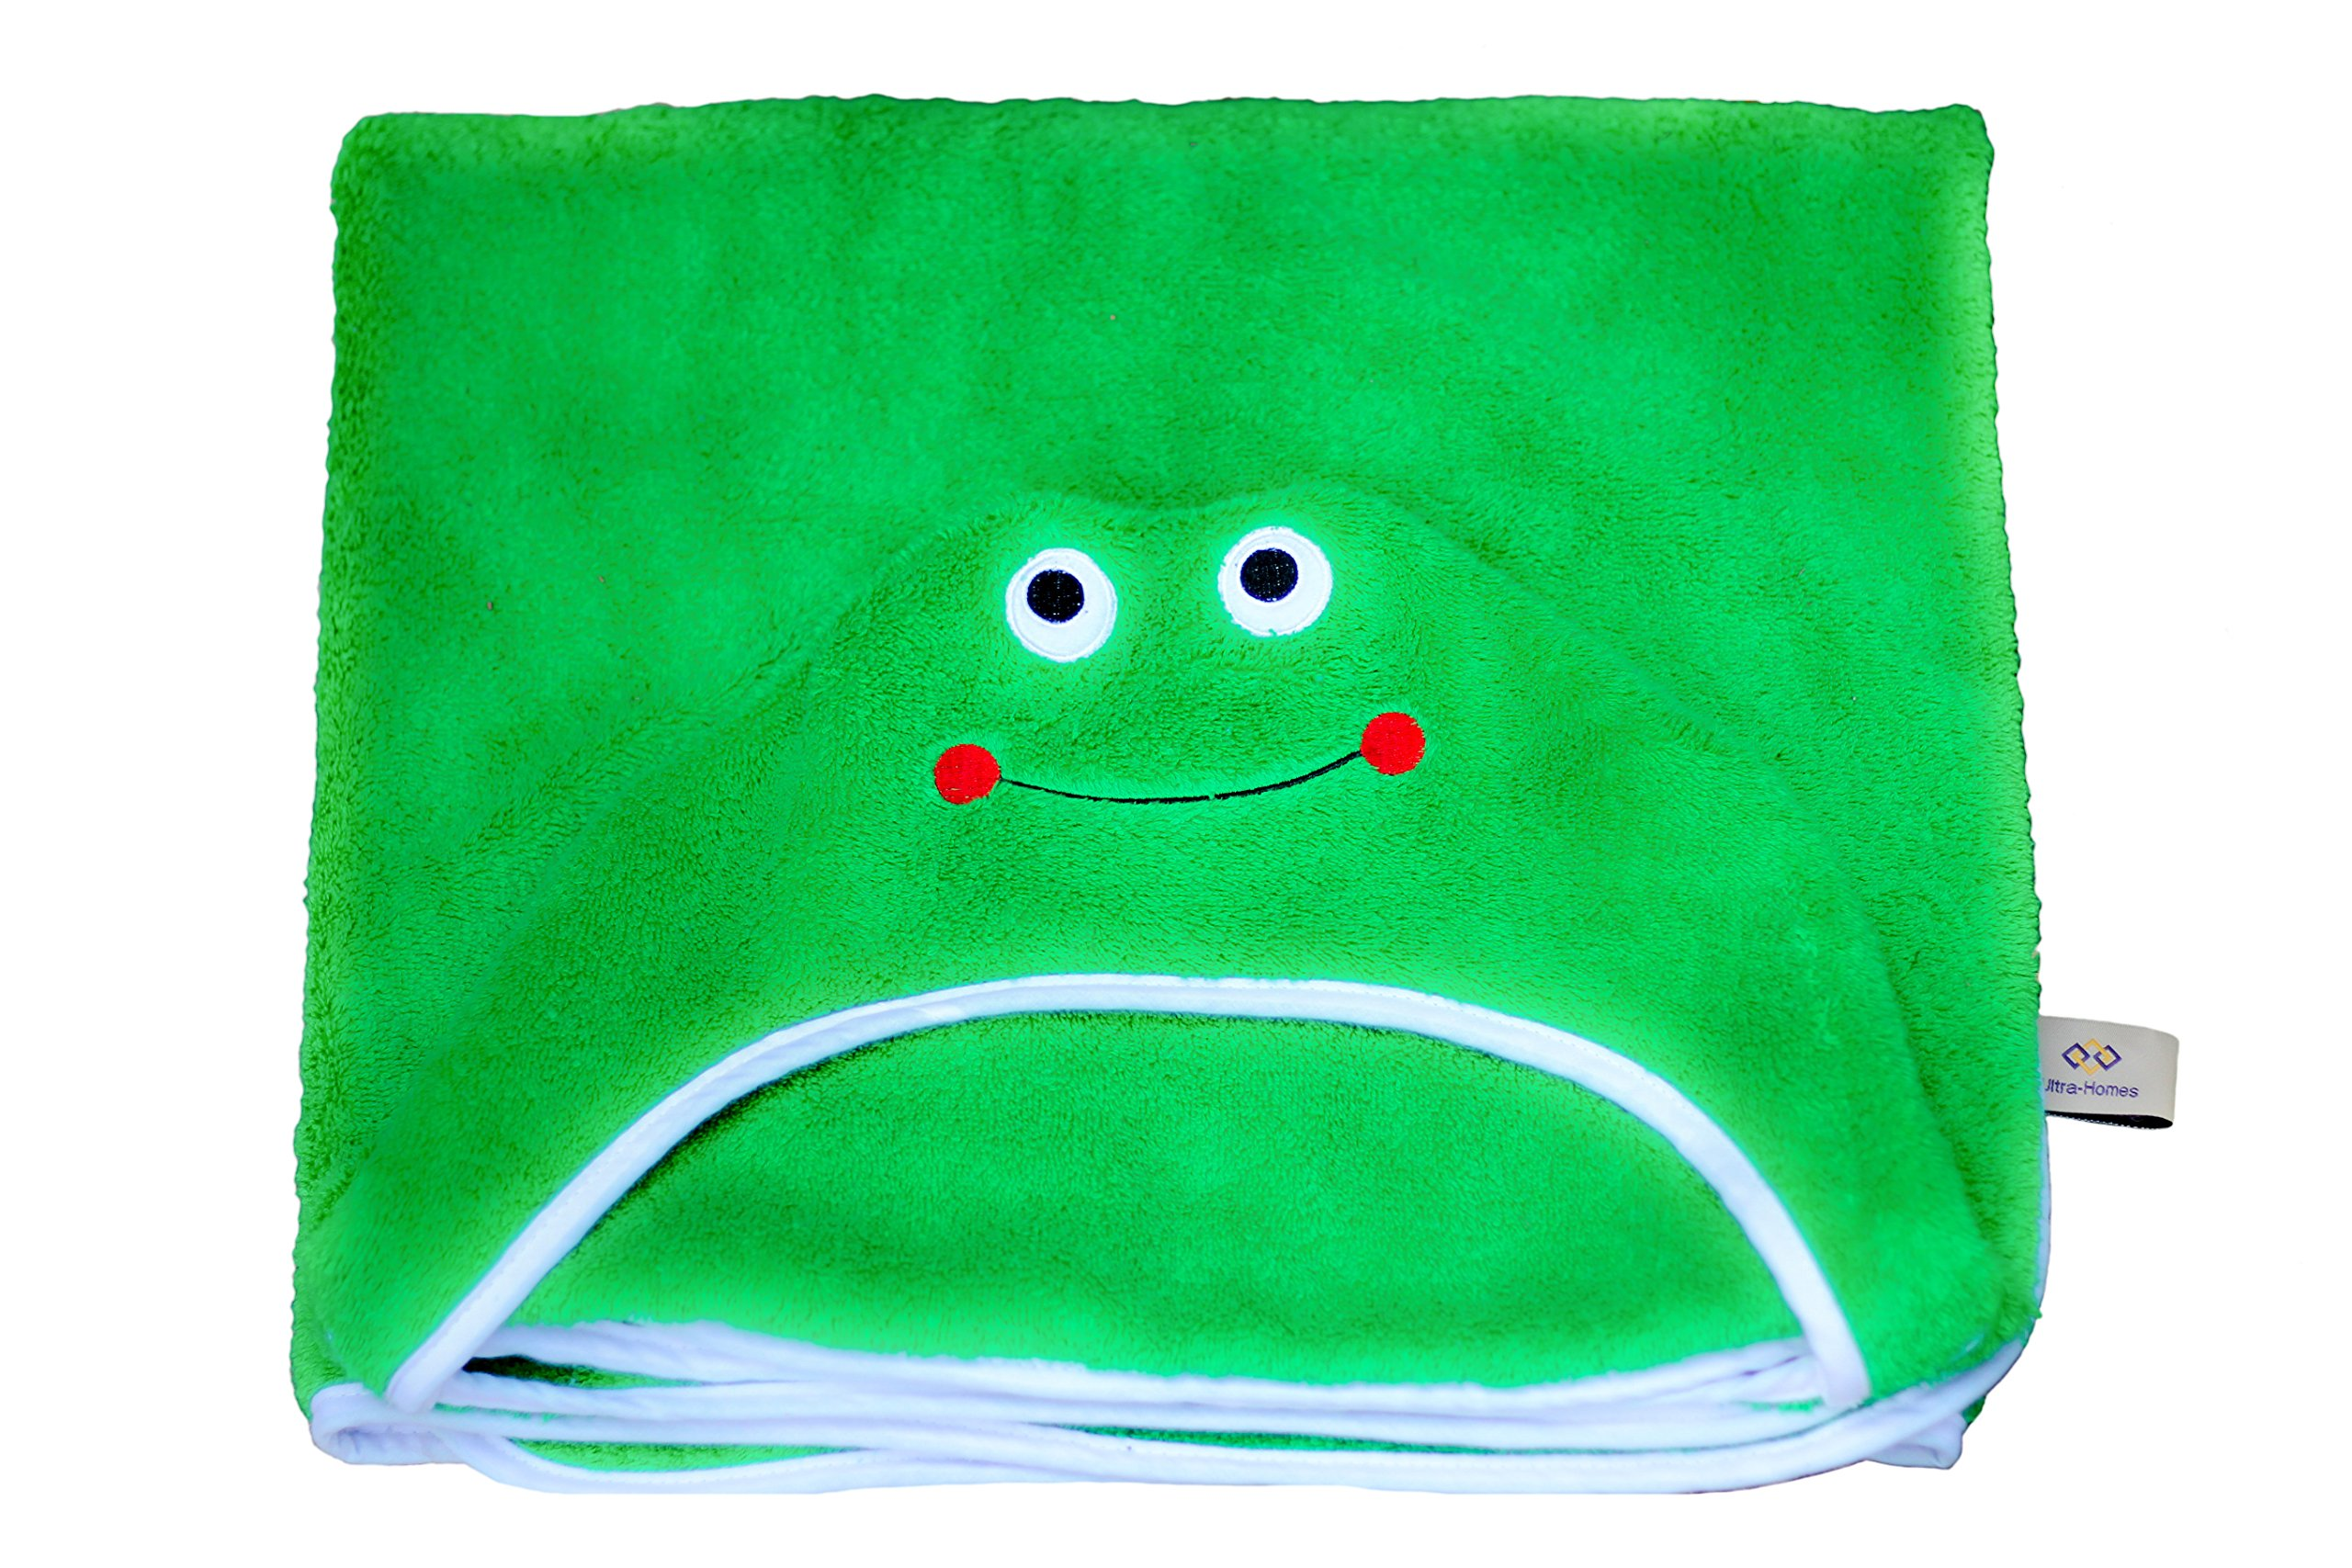 "Frog Face Hooded Kid Towel (Green), 27.5"" x 49"", Plush and Absorbent Luxury Bath Towel! 600 GSM, 100% Cotton"